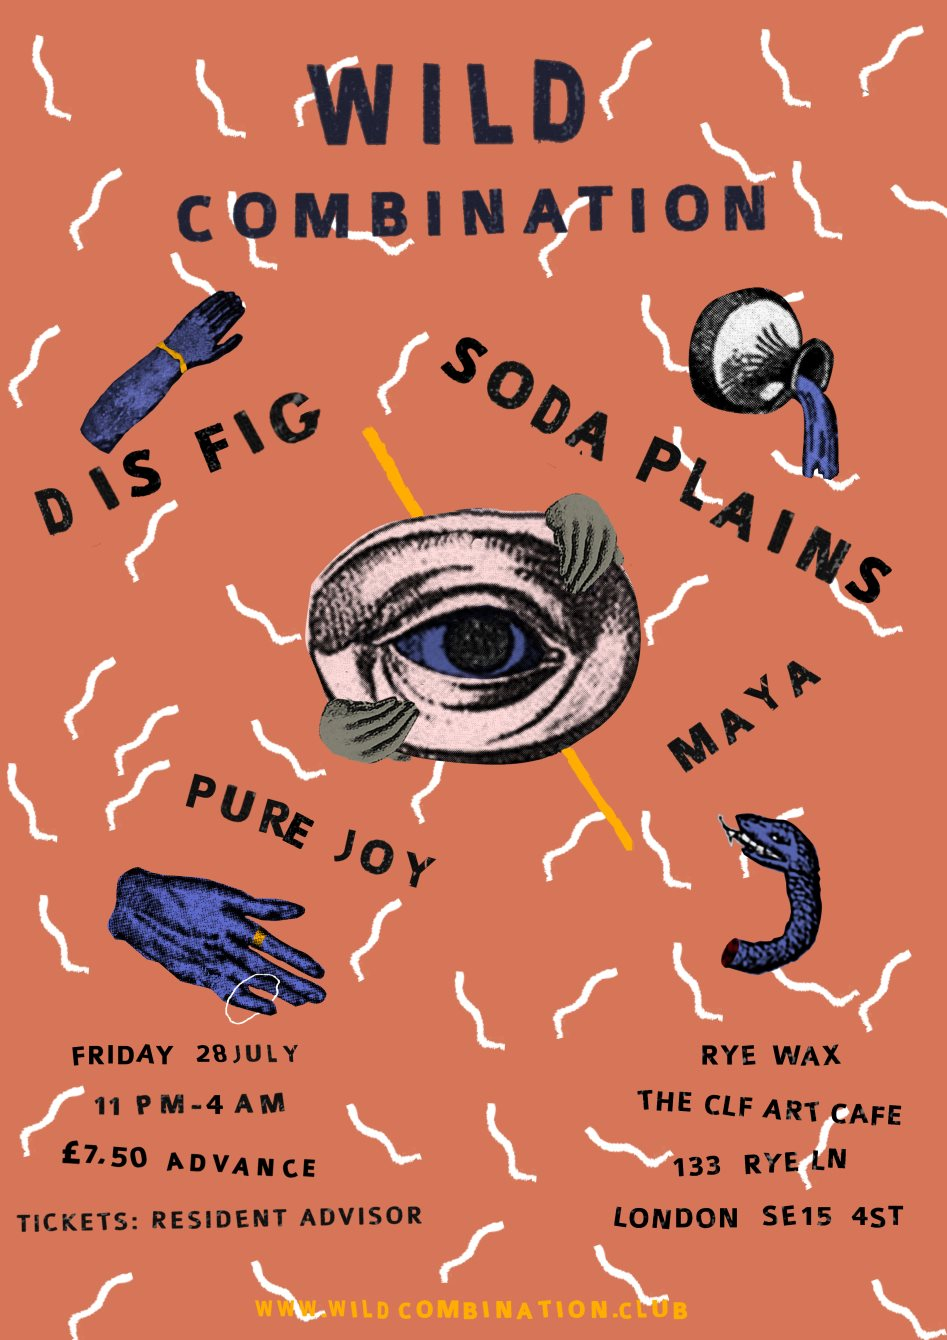 Wild Combination with Dis Fig and Soda Plains - Flyer front